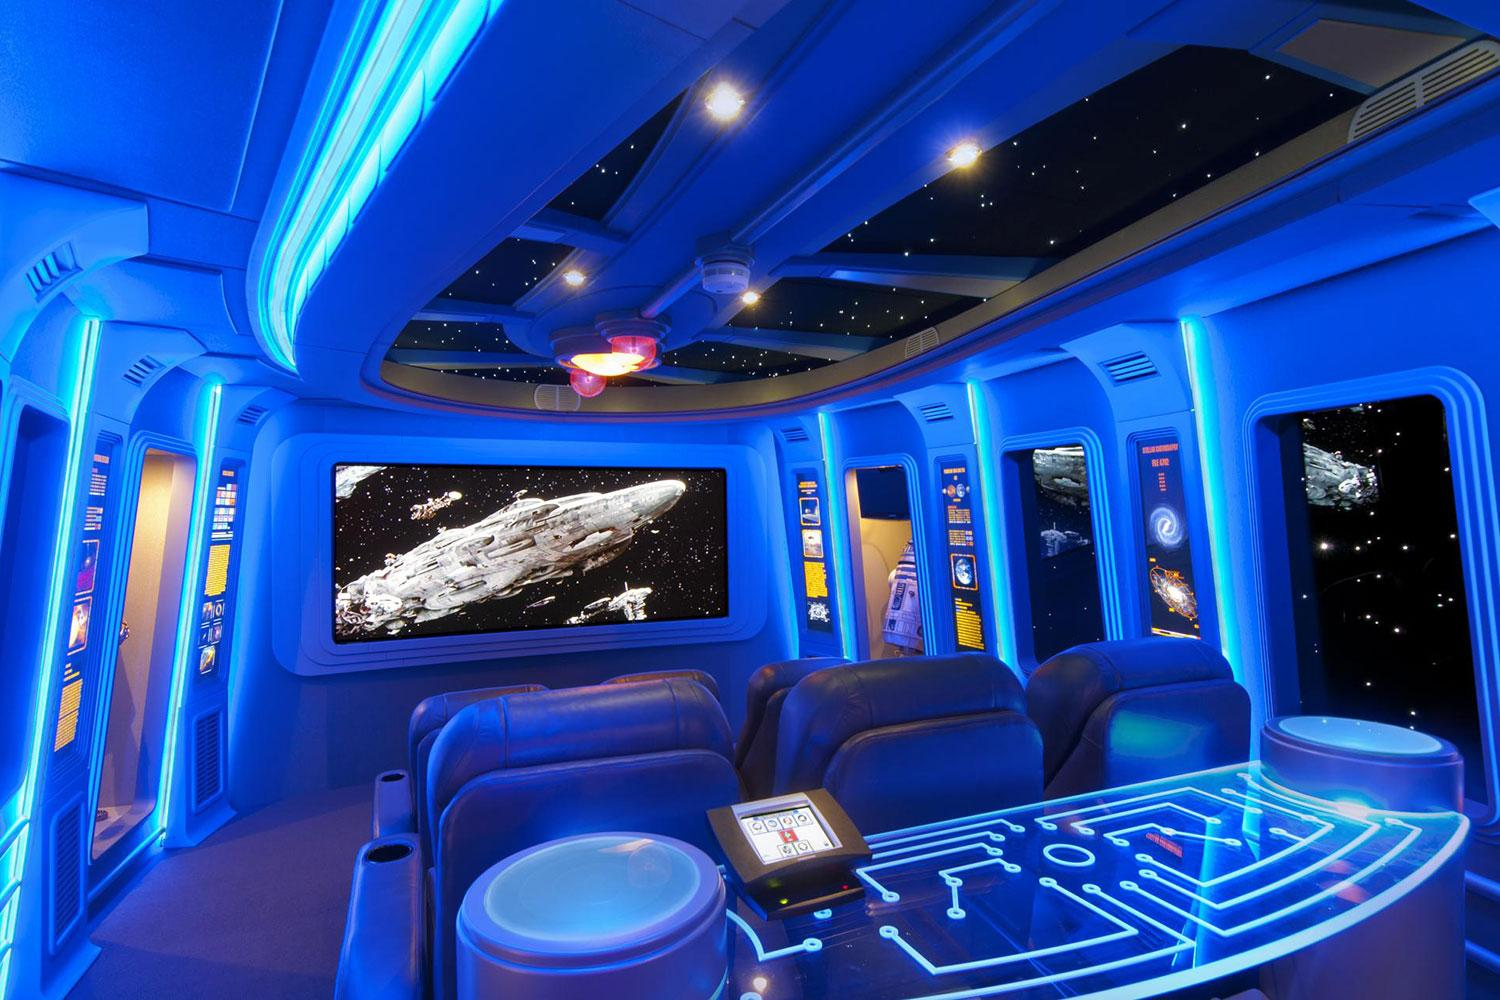 Star Wars Themed Bedroom Pics Of The Best Star Wars Inspired Home Theaters